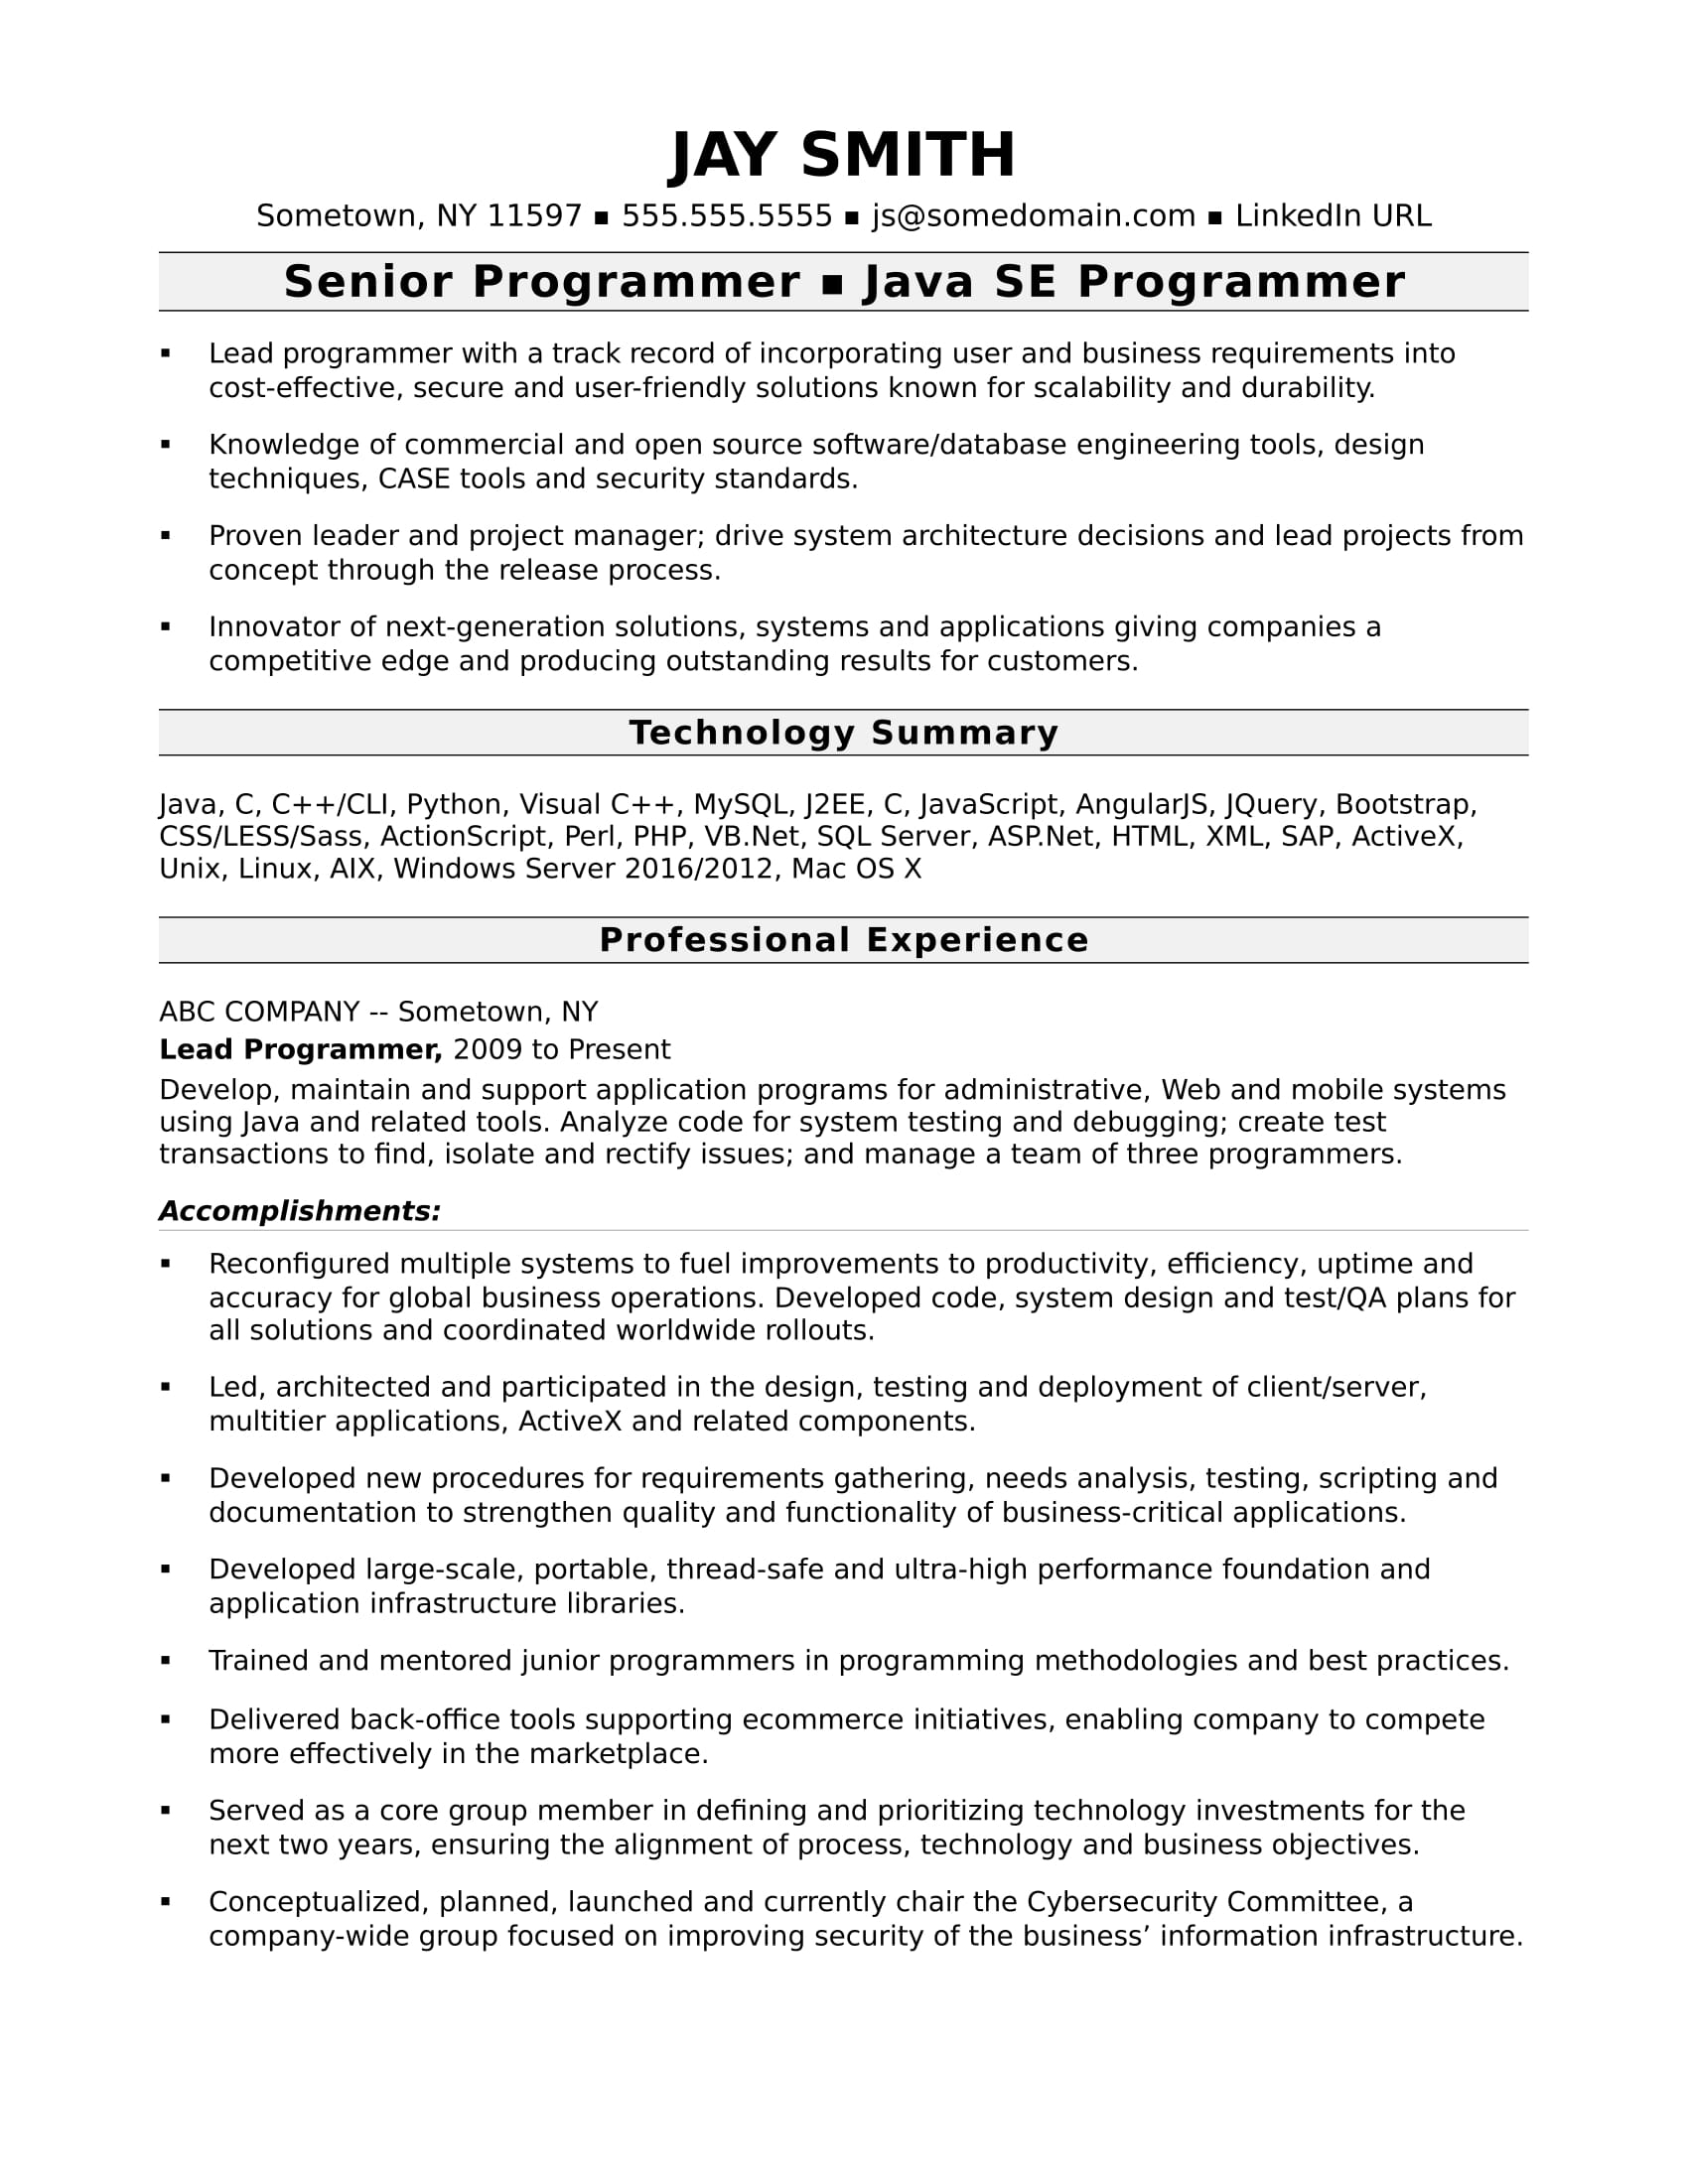 Resume Format Requirements Resume Templates